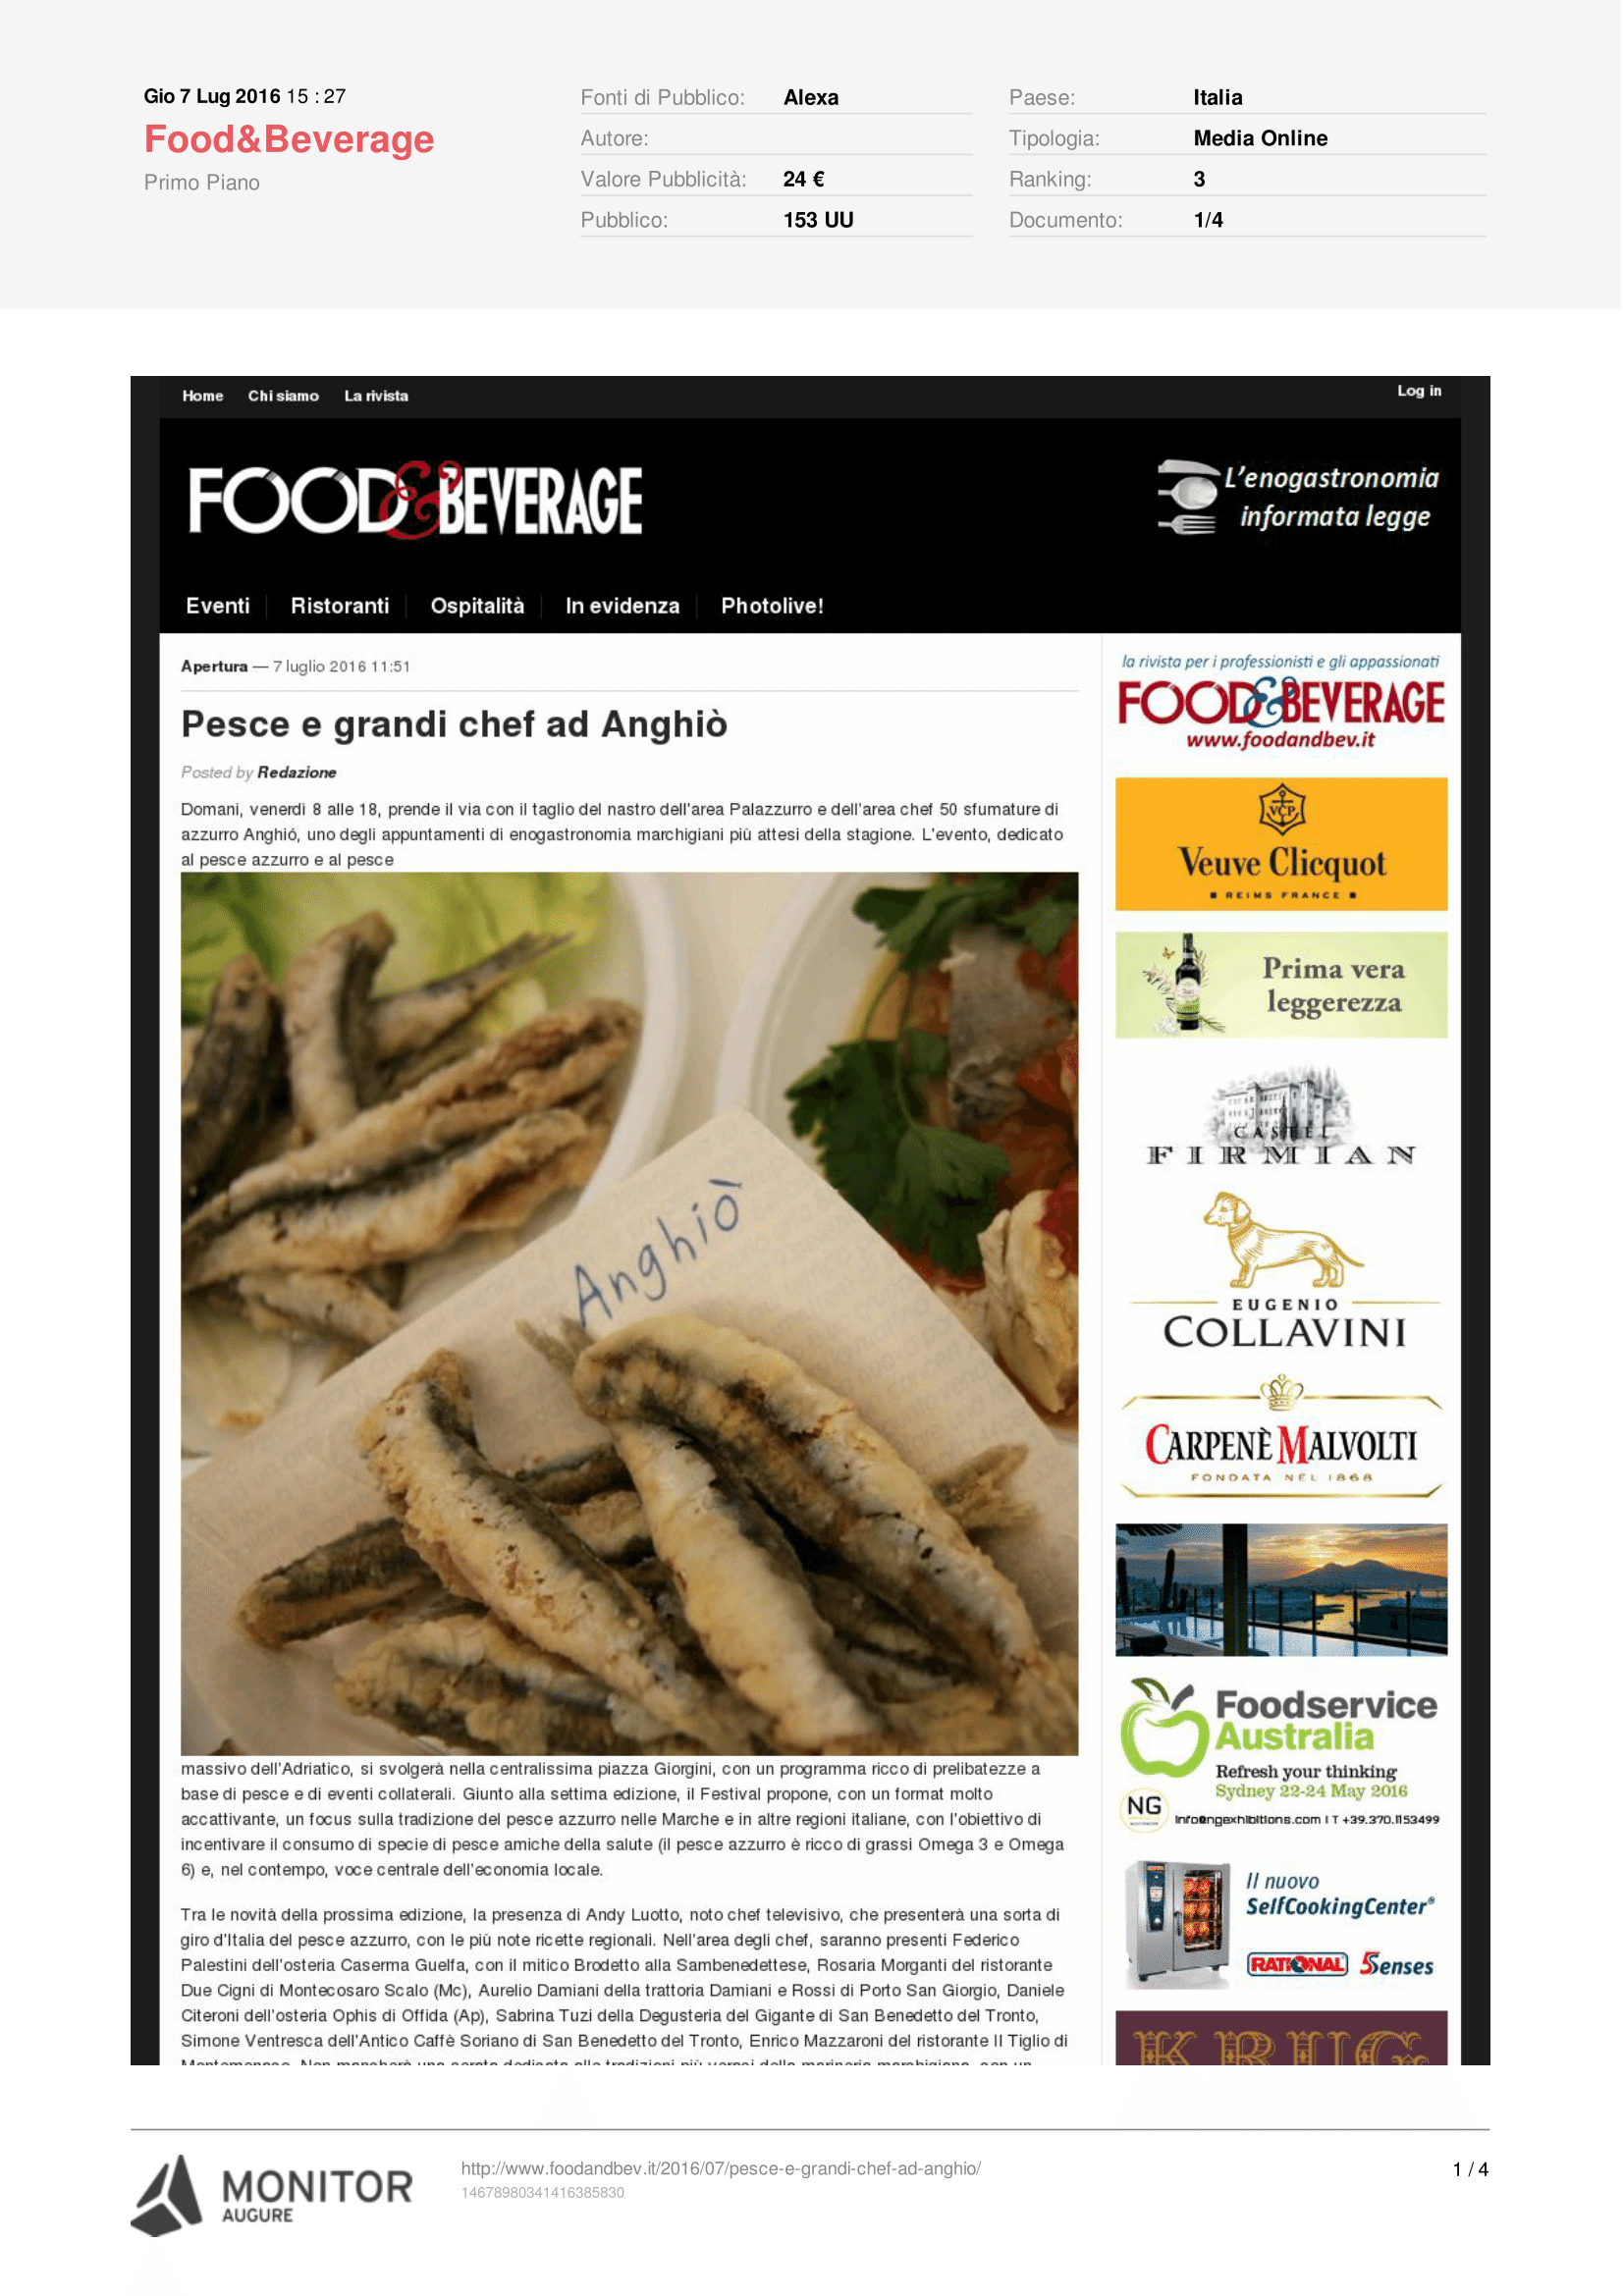 07.07.16_foodandbev.it-1